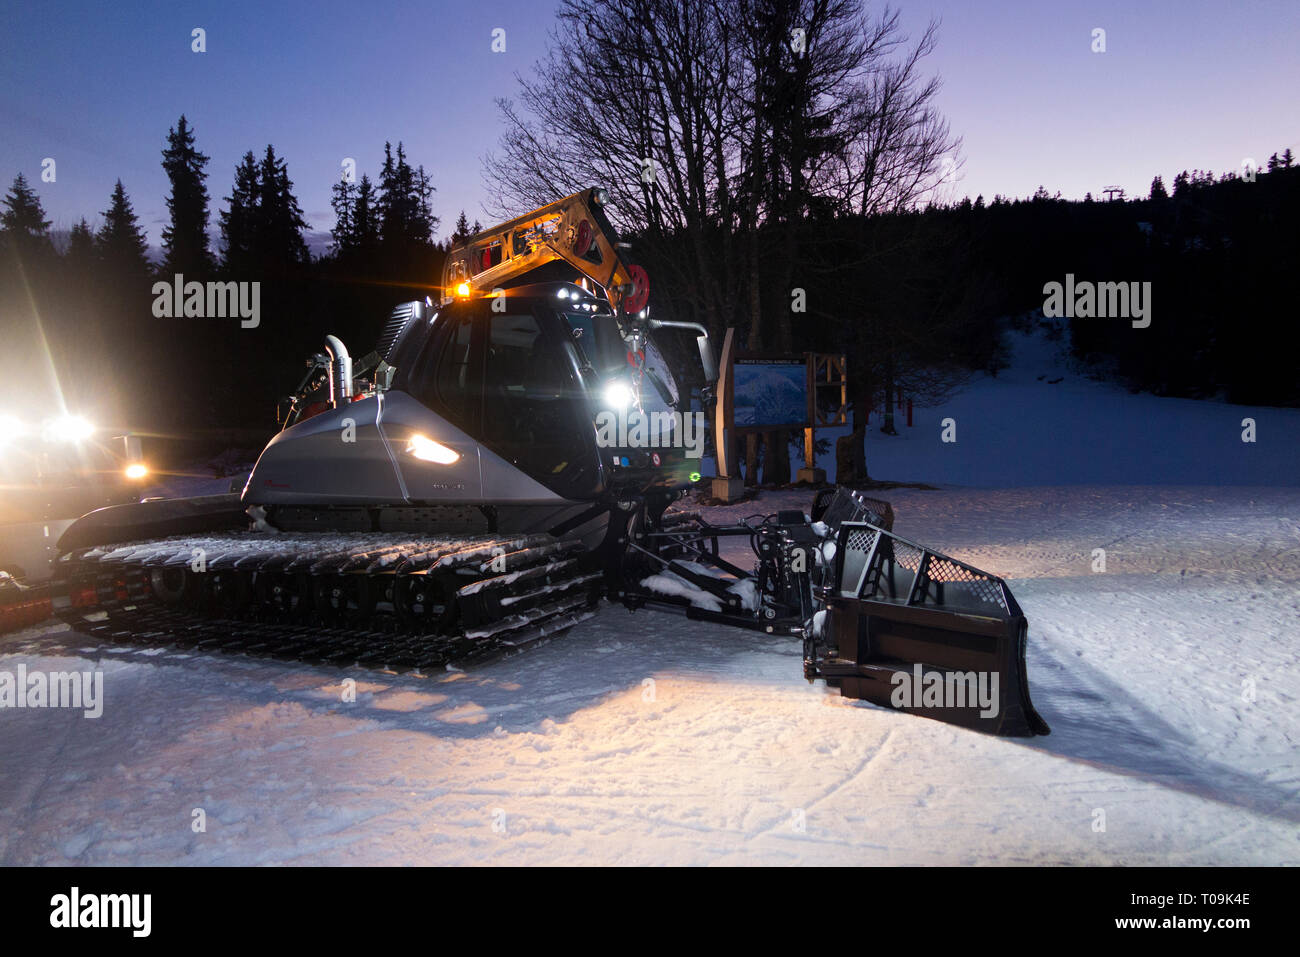 Snow Groomer made by Prinoth Leitwolf crawler ready to prepare the piste / ski slopes at resort Aillons-Margériaz 1600, in France. (104) - Stock Image